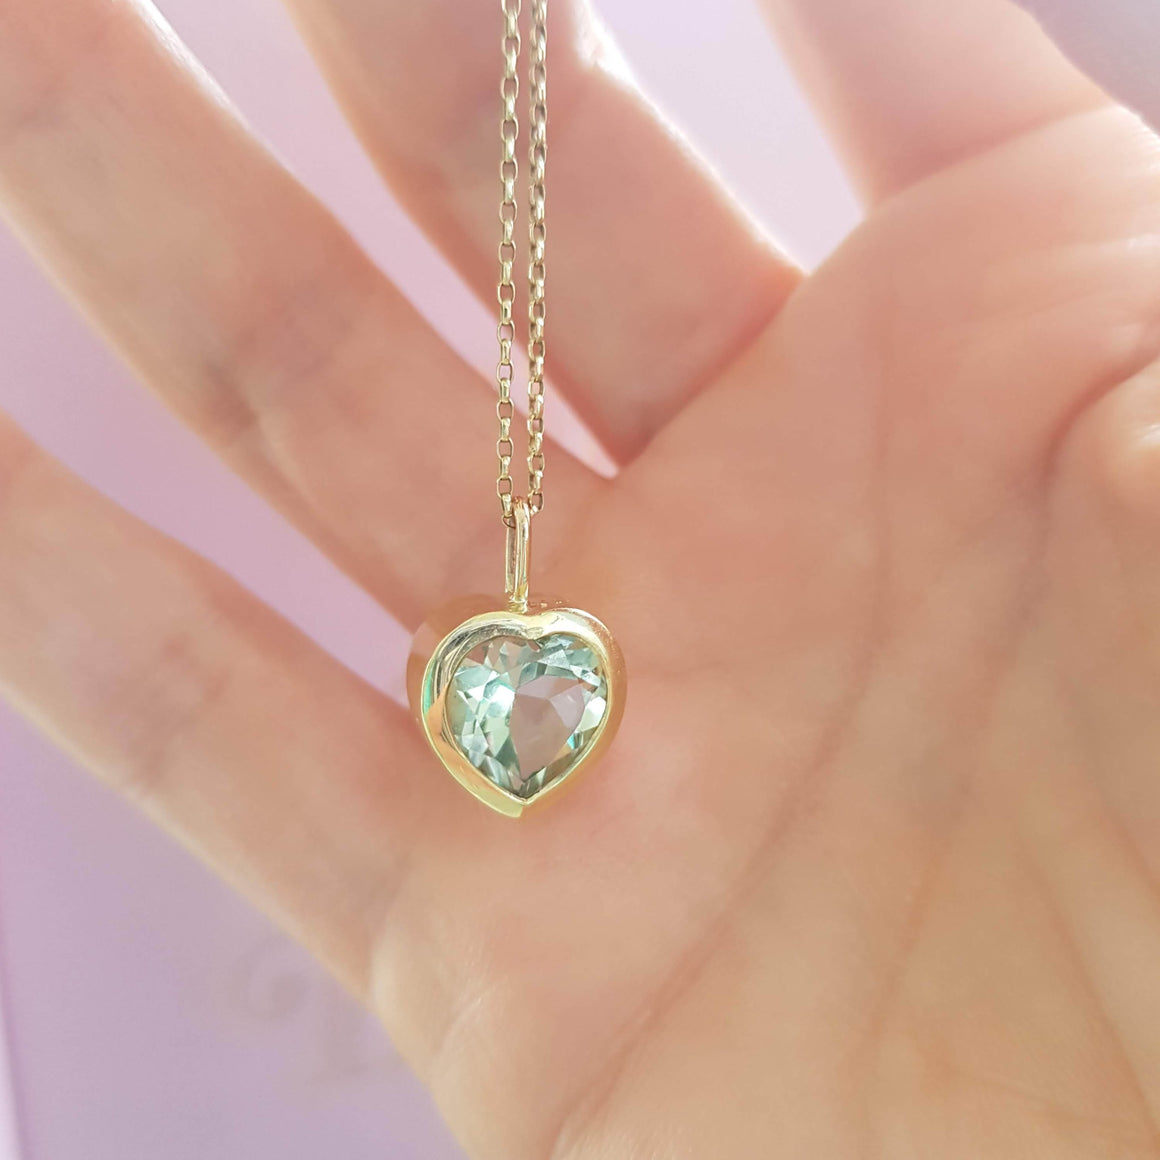 Green Amethyst Pendant 9k yellow gold. Ella Green Jewellery